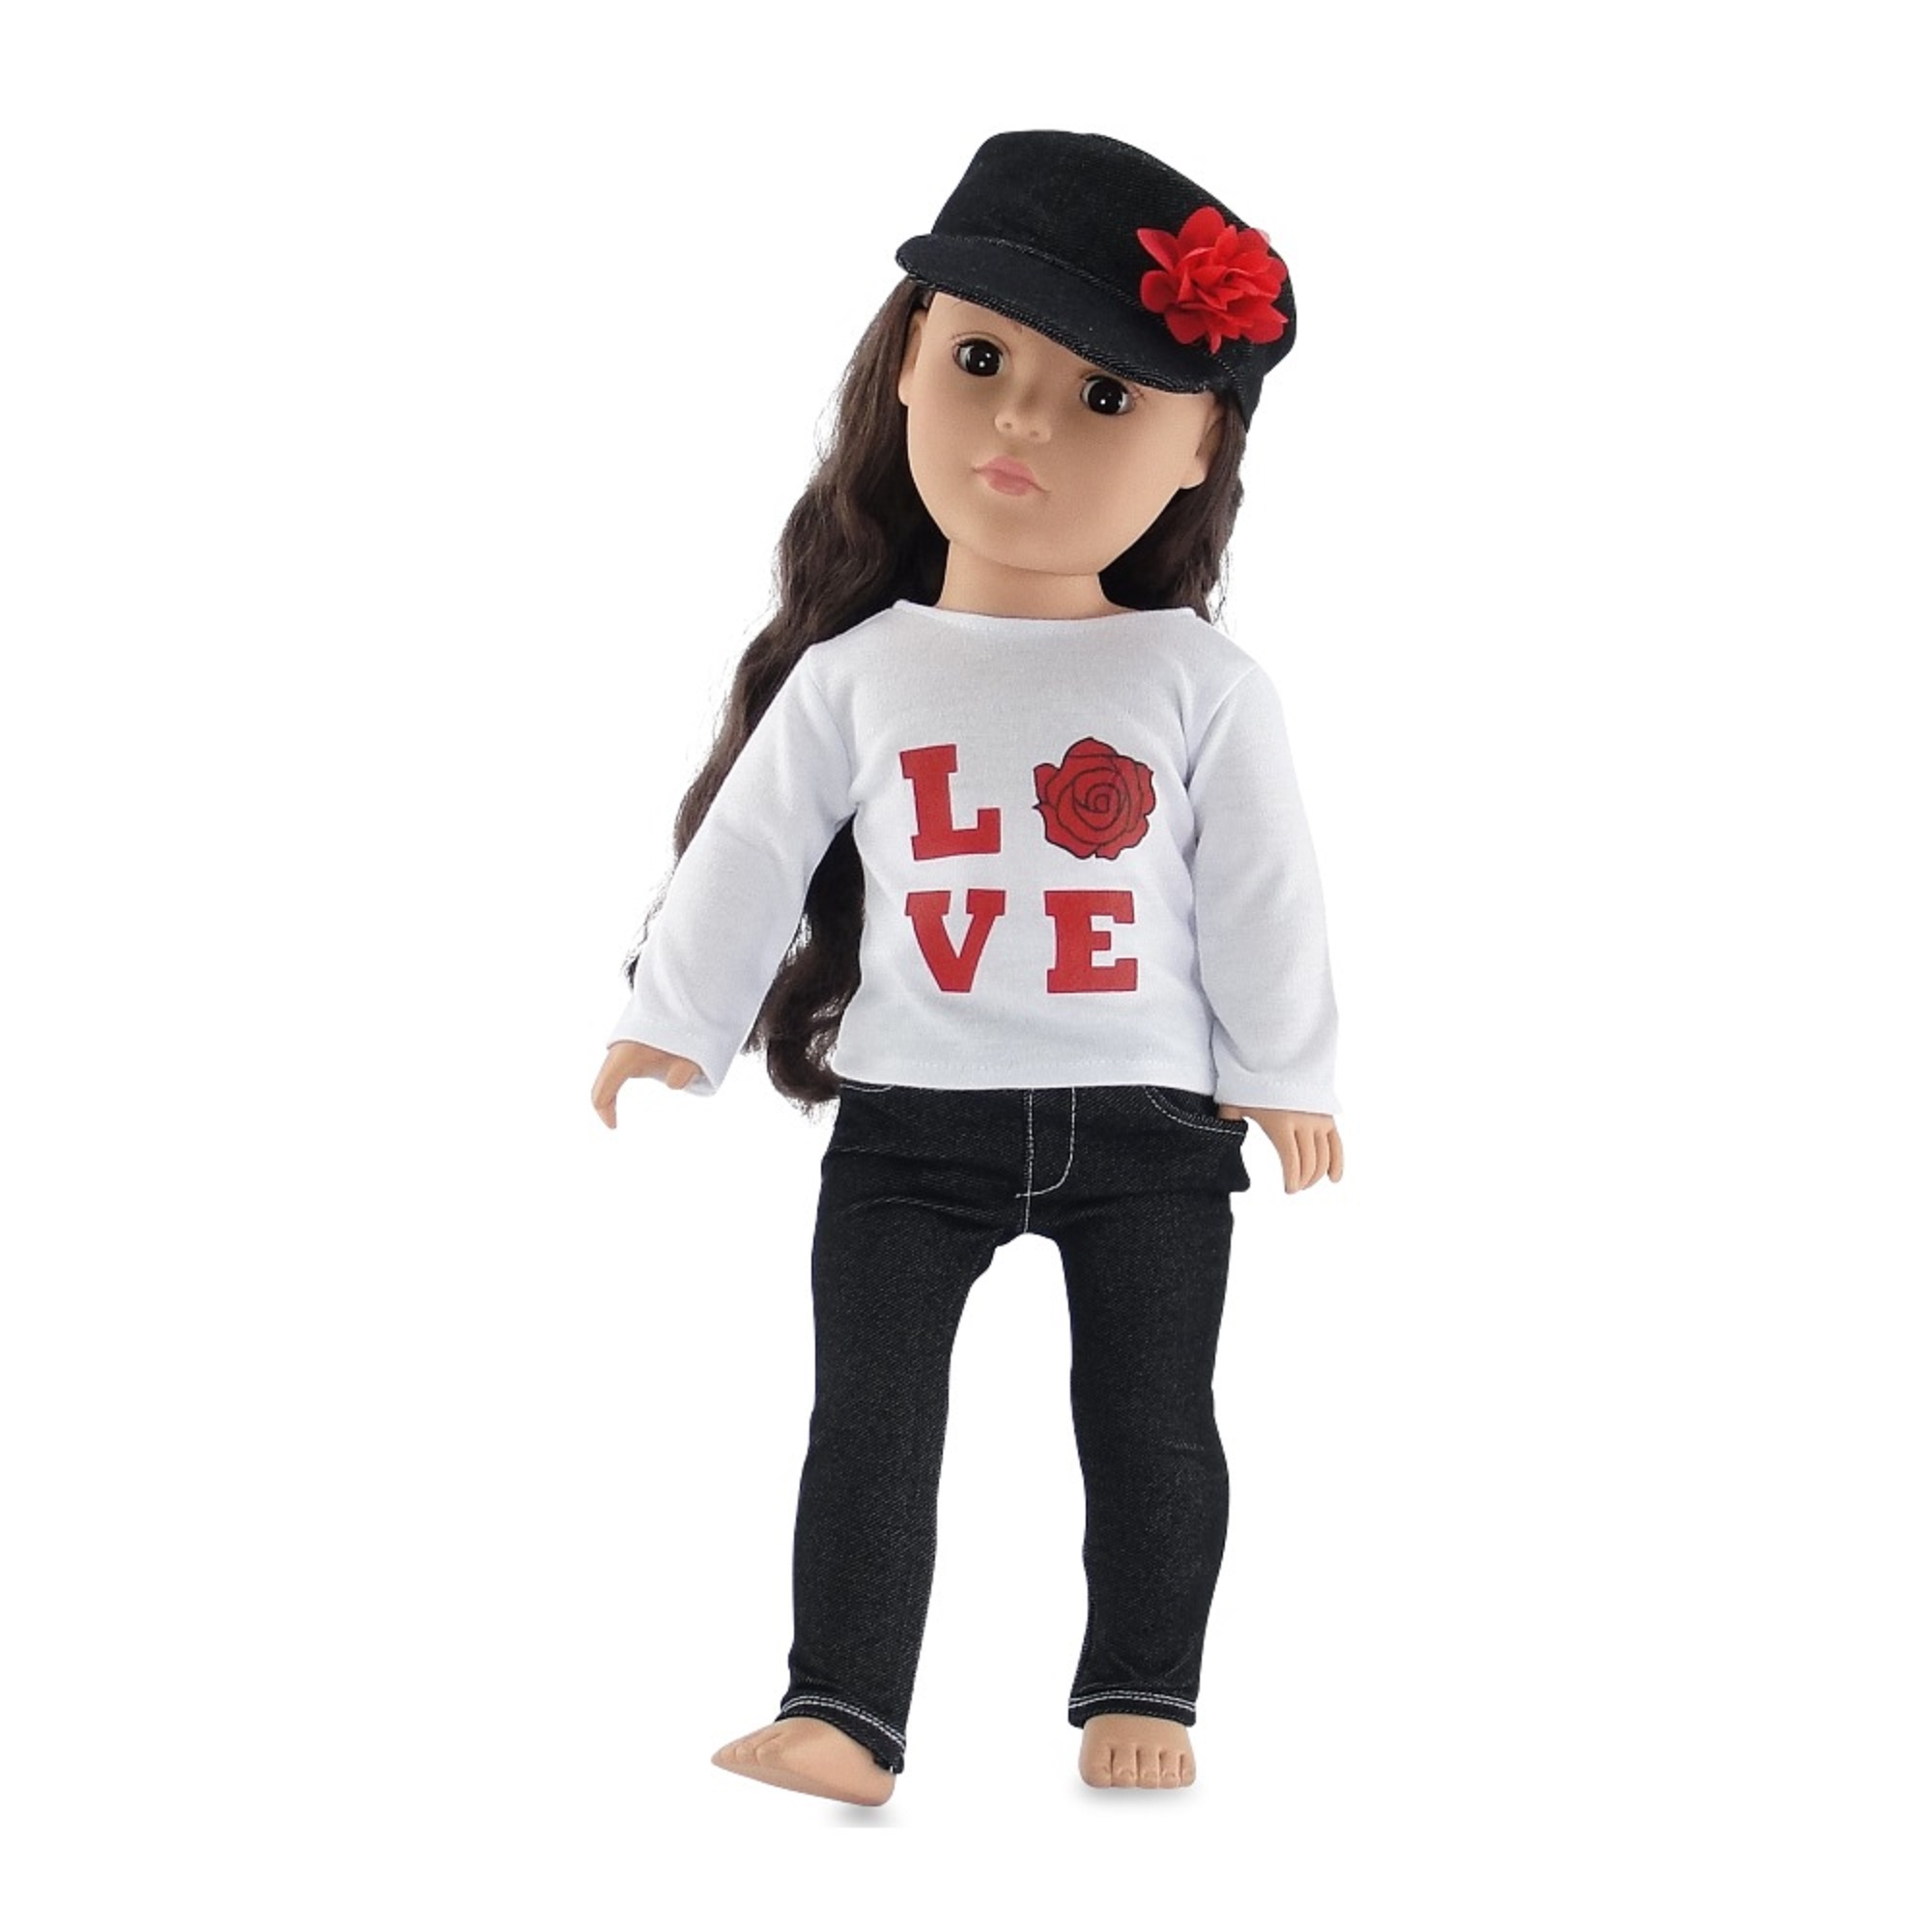 """18 Inch Doll Clothes   Black Stretch Skinny Jeans Outfit, Including Long Sleeved T-Shirt with """"Love"""" Rose Graphic and Denim Hat   Fits American Girl Dolls"""